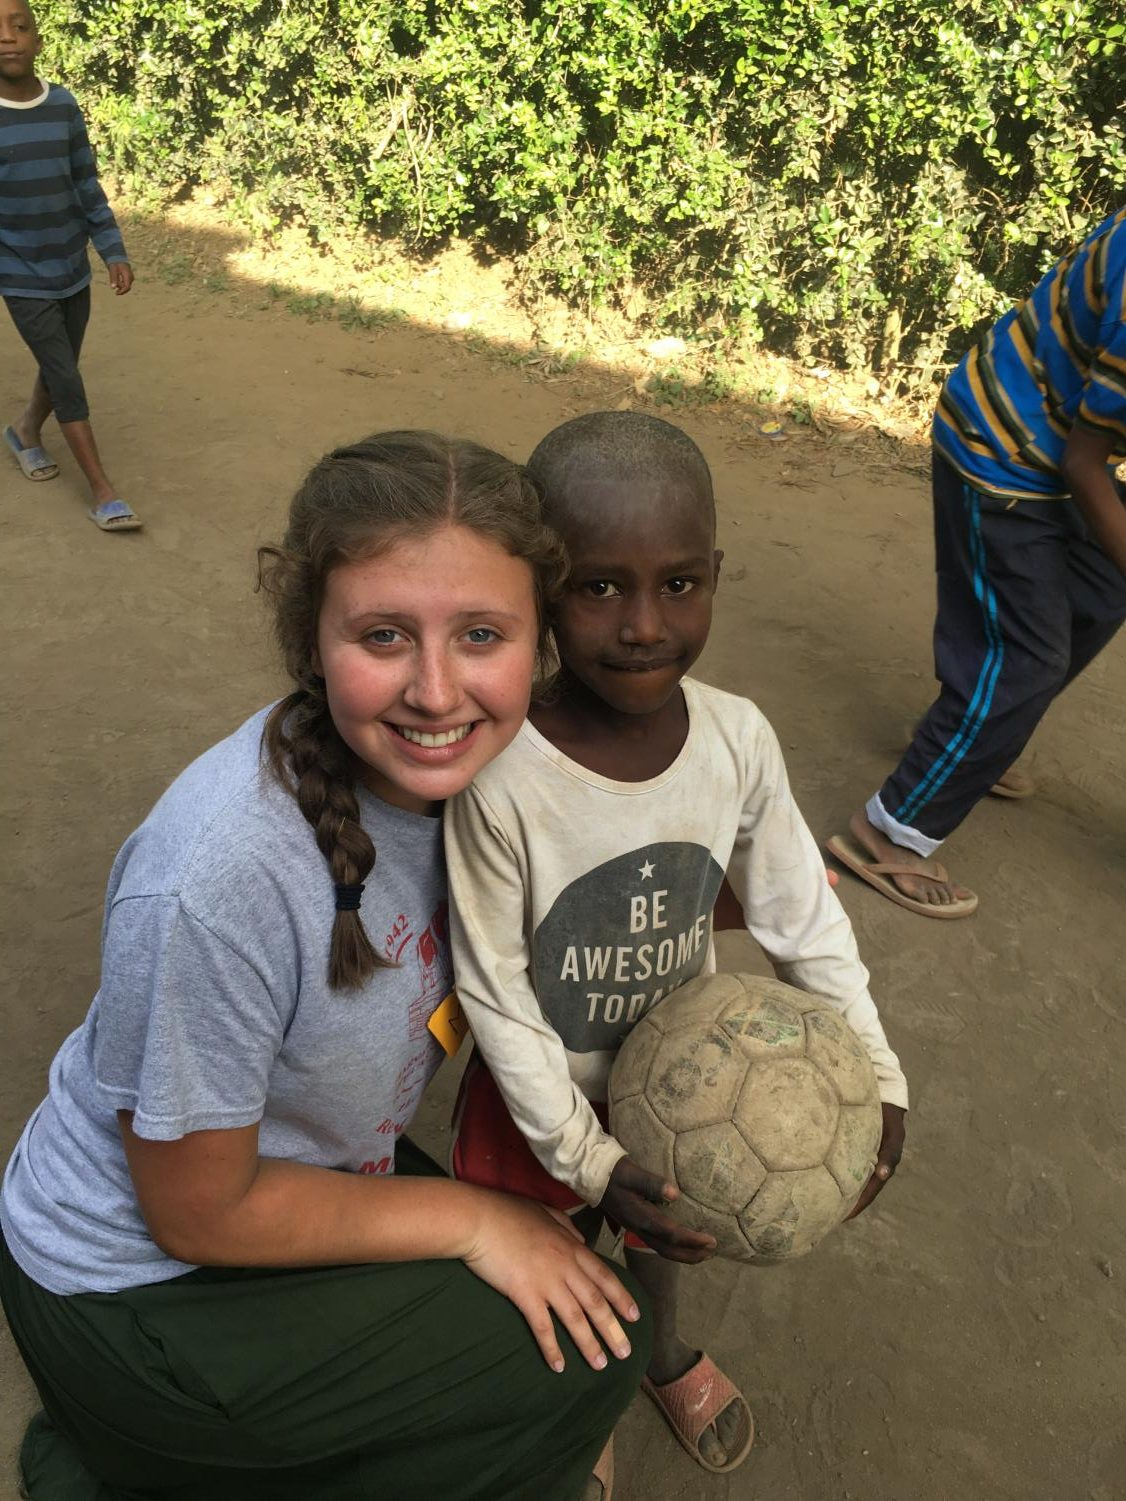 Maya Wiley, senior, smiles with one of the kids from Africa, after playing soccer. Wiley not only played with the kids, but she also helped improve their schools.